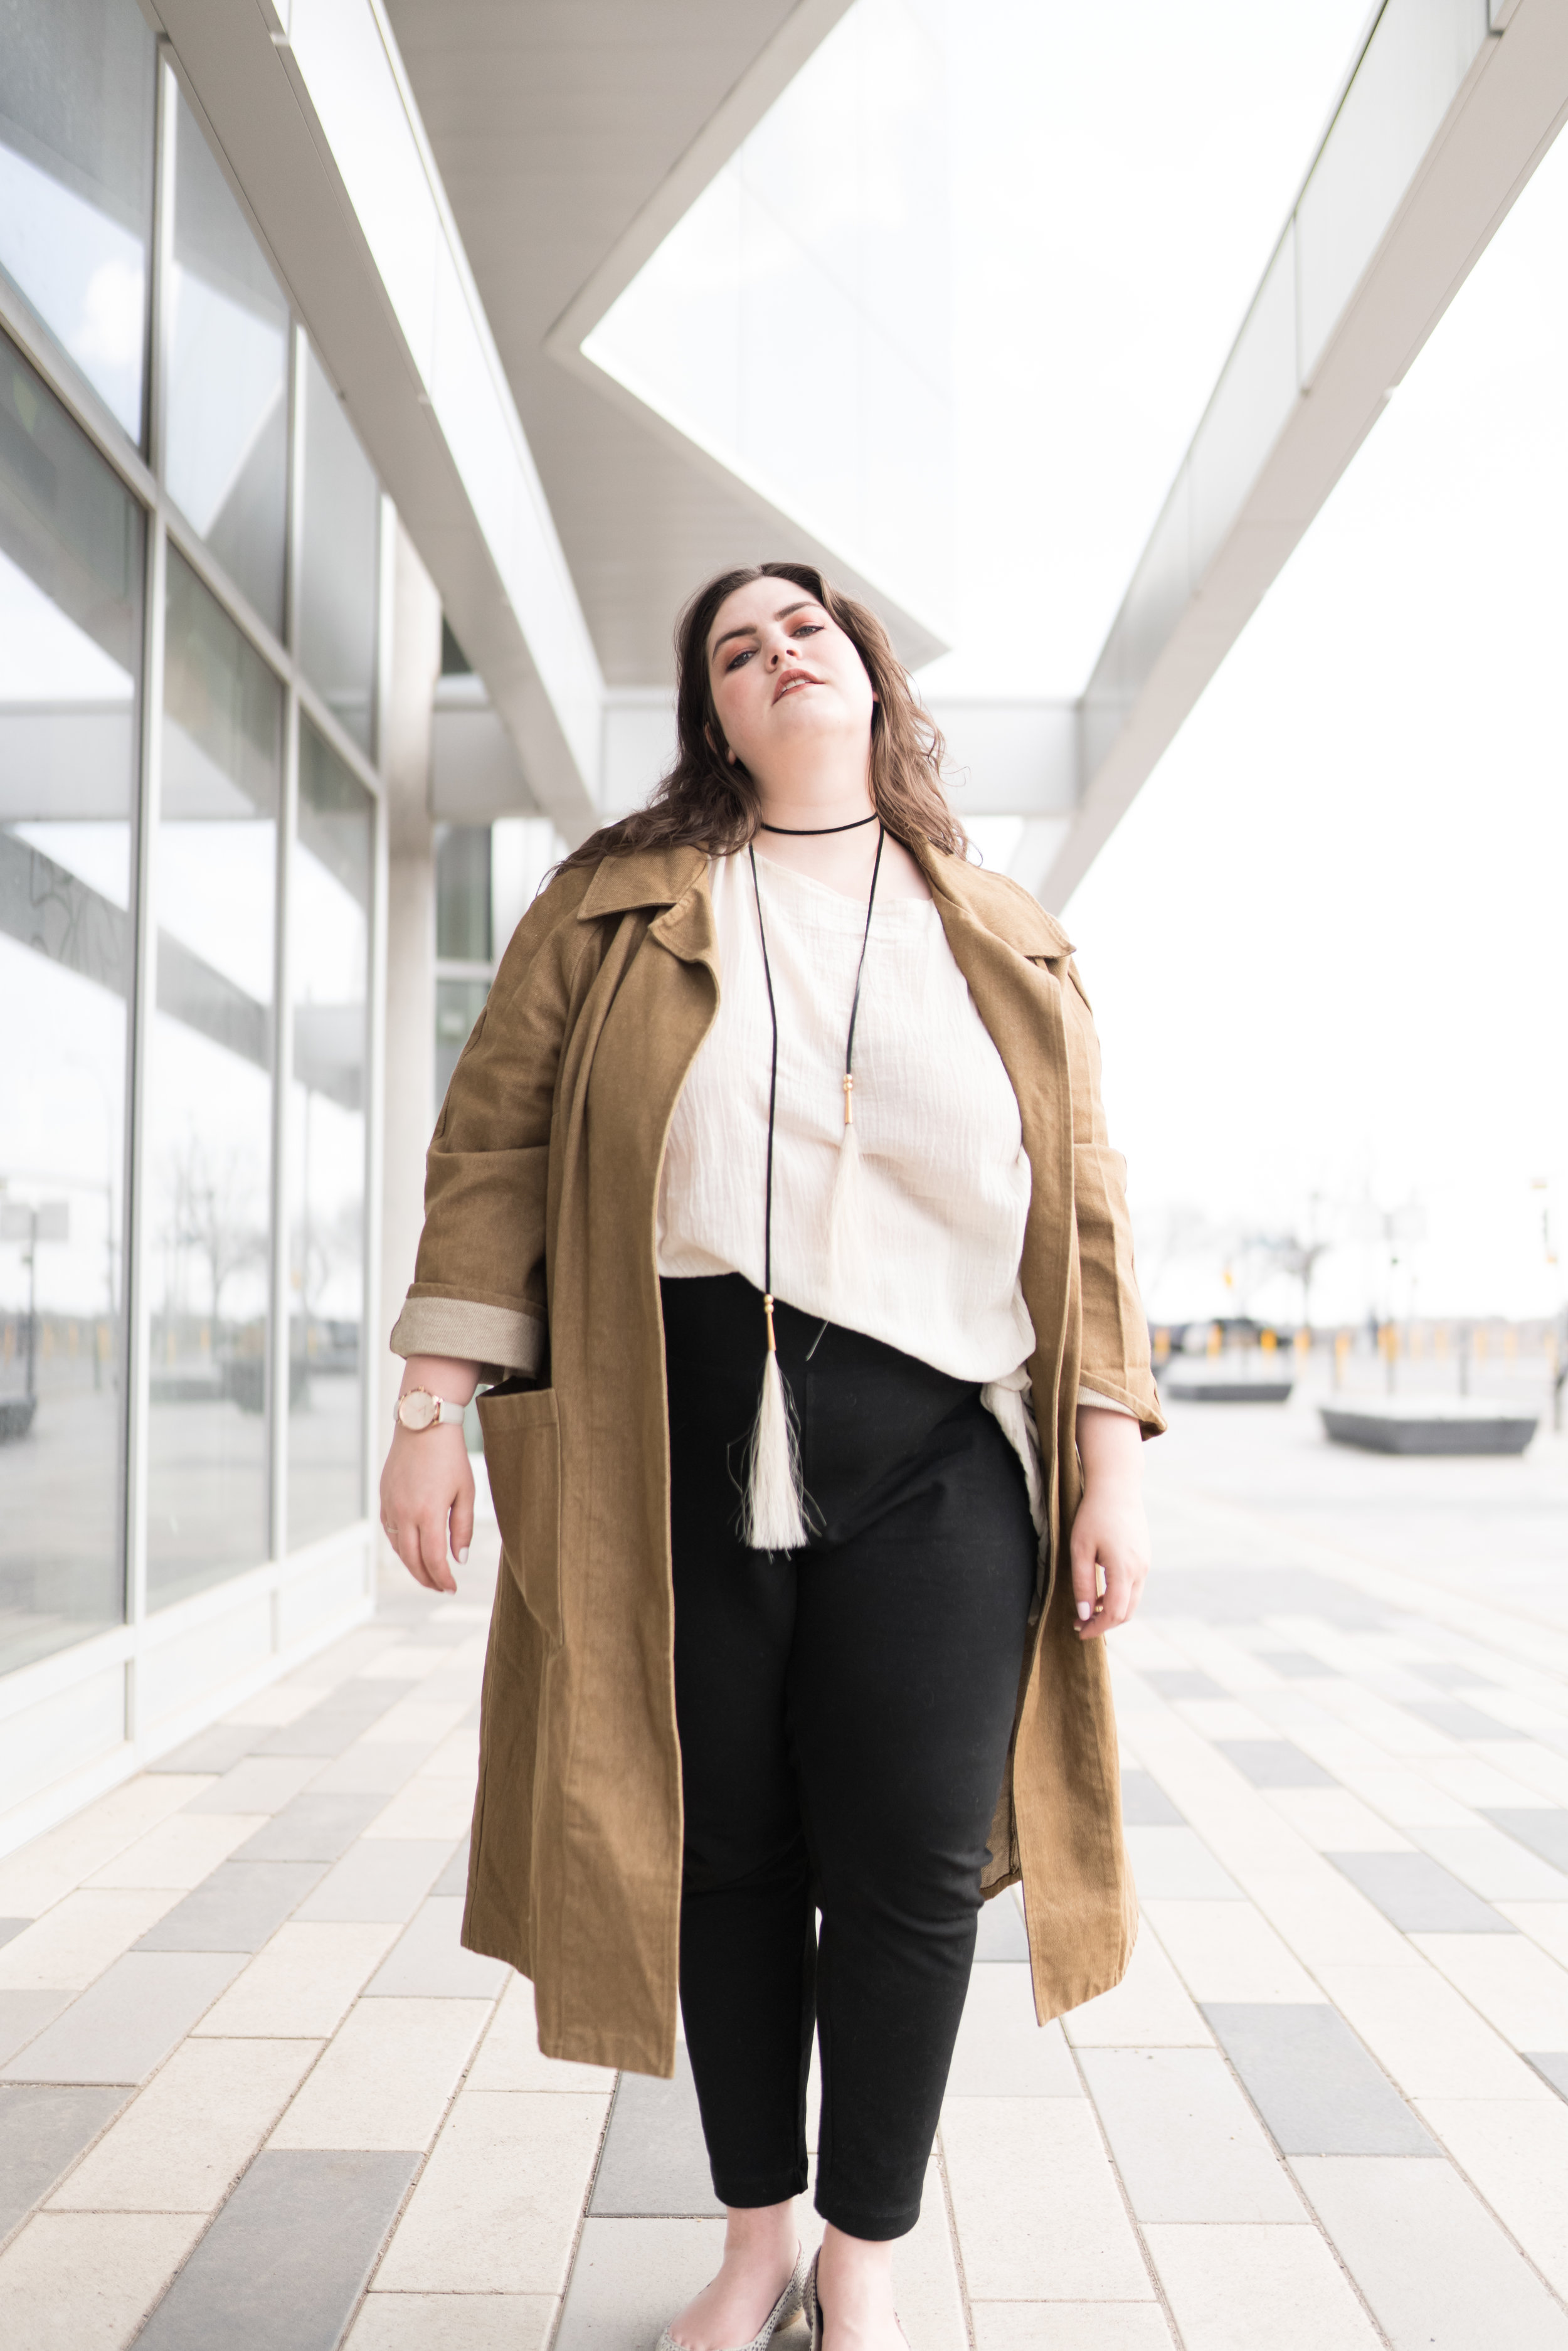 Marielle wears  Laasso  tassels with a  State the Label  coat,  UziNYC  top, and  Brass Clothing  pants.